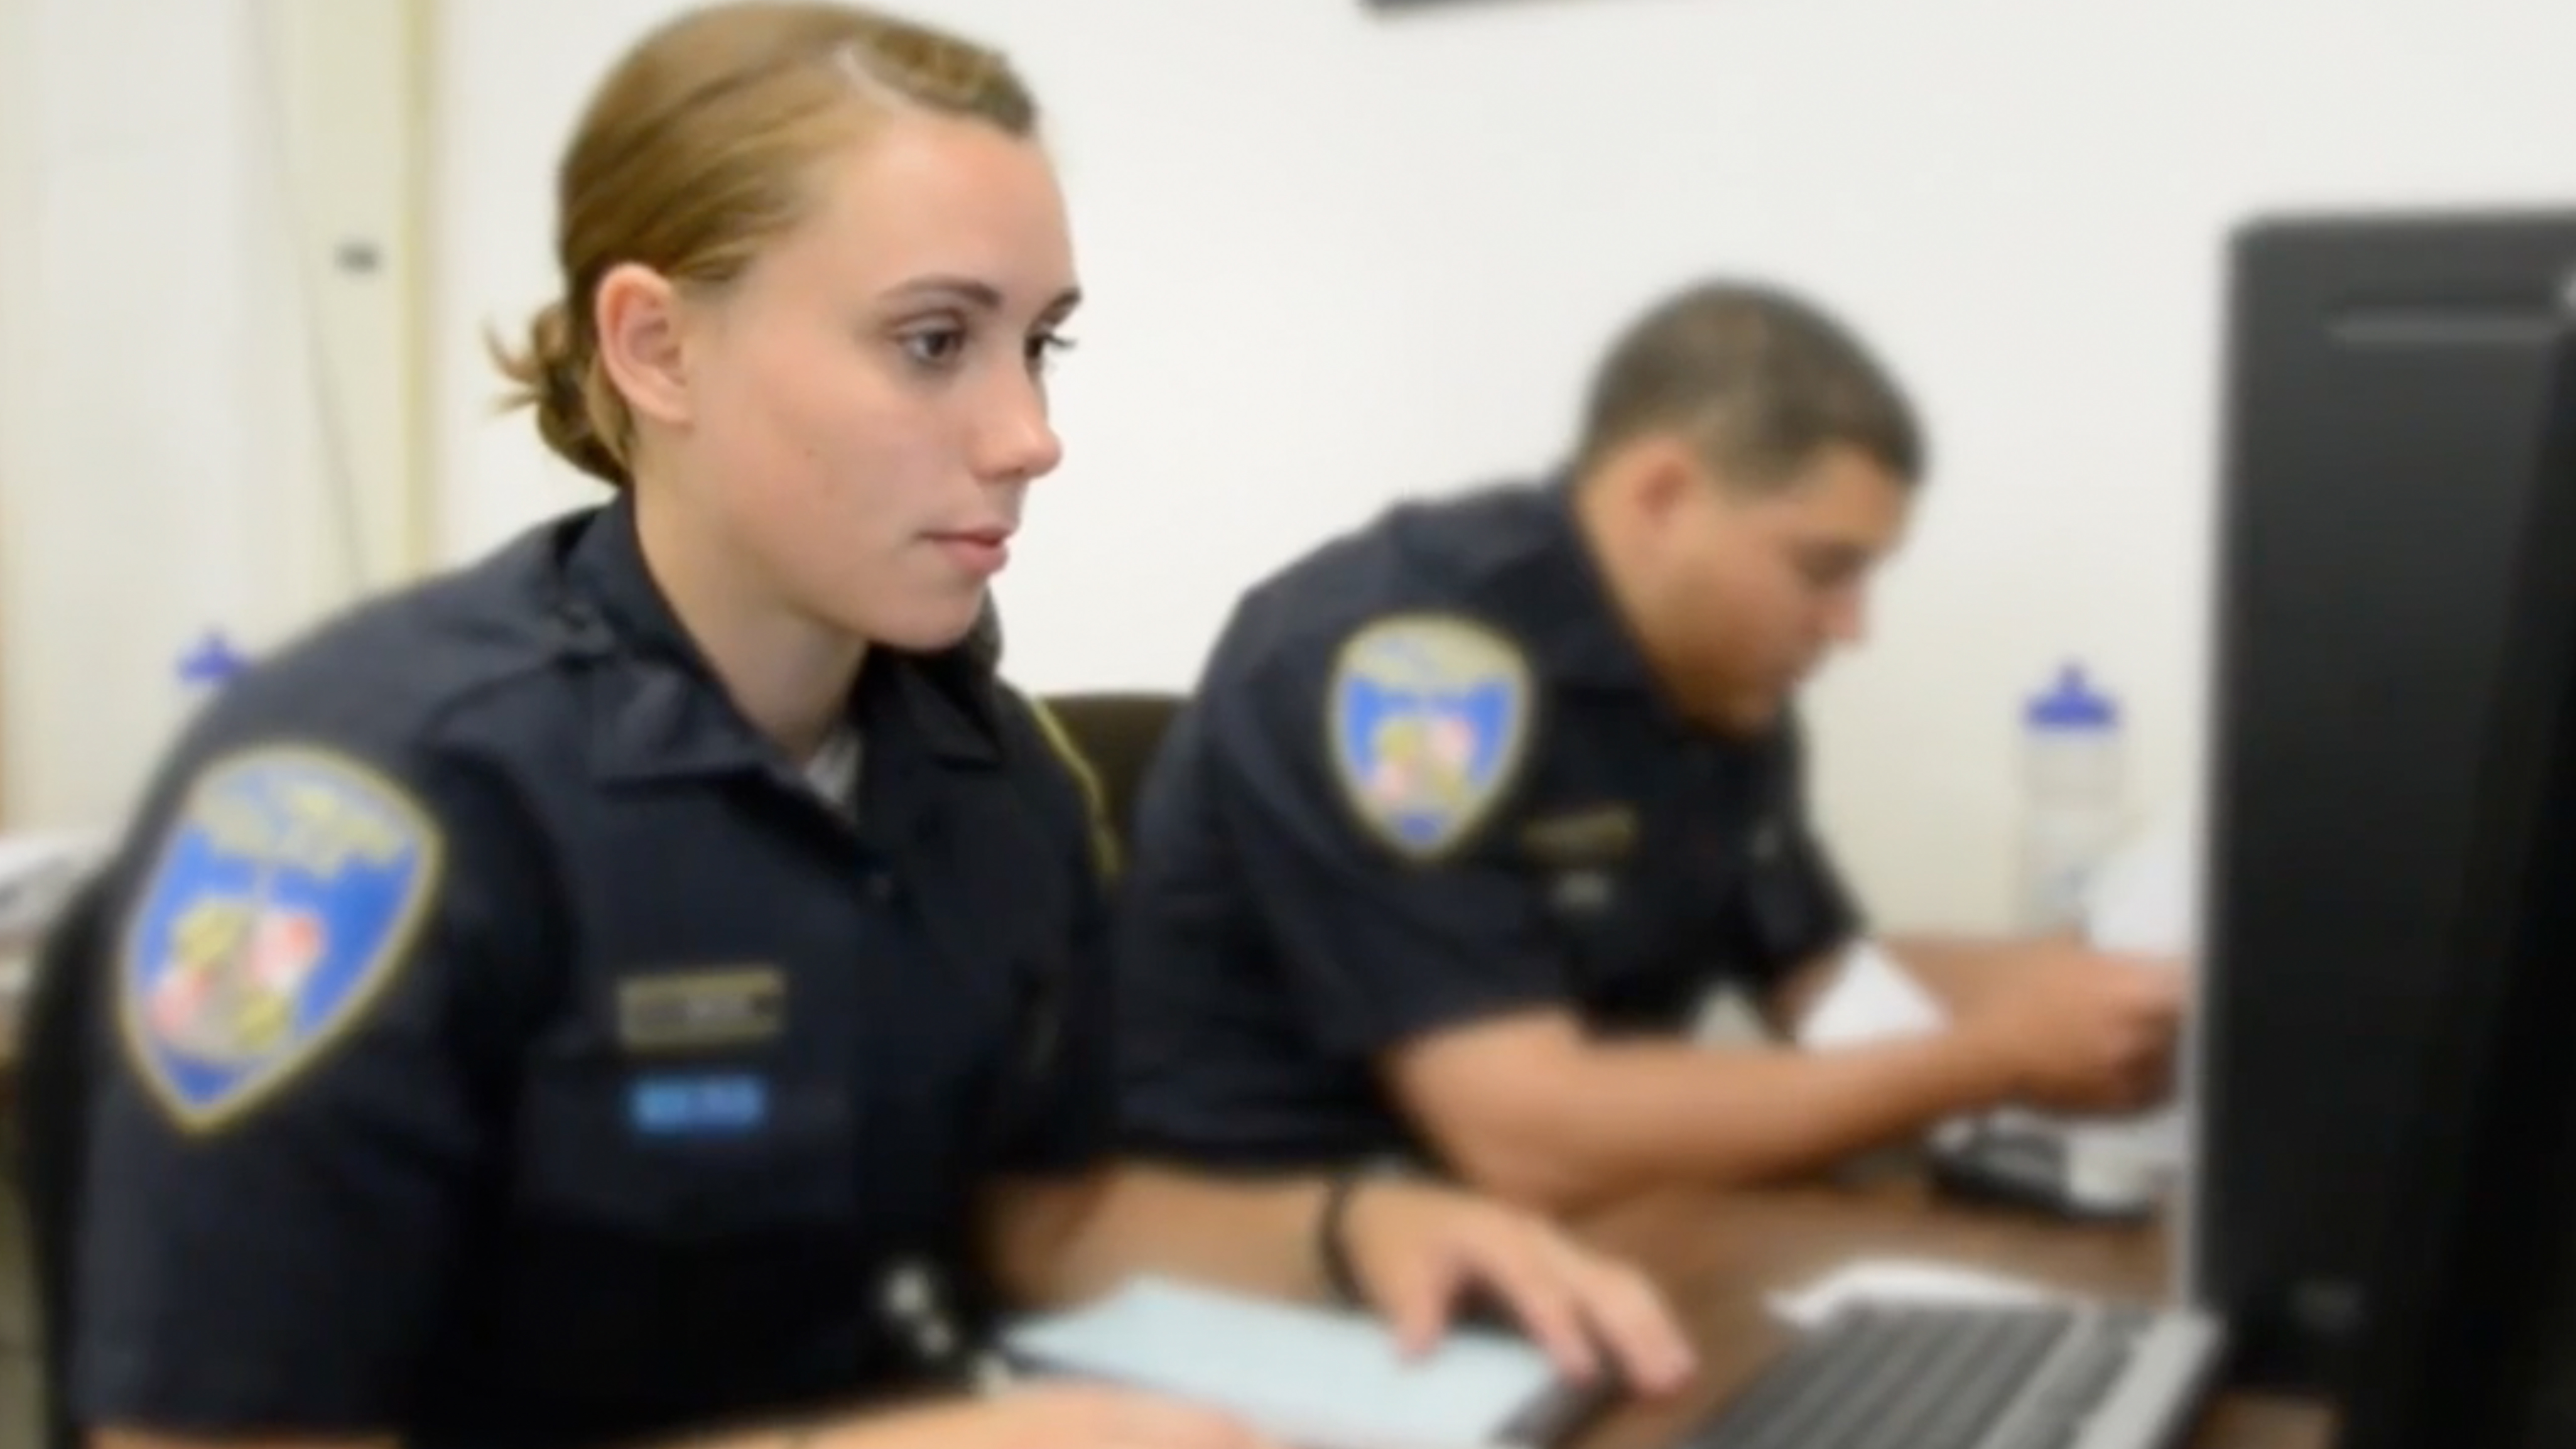 Police officers sitting at computers taking online training